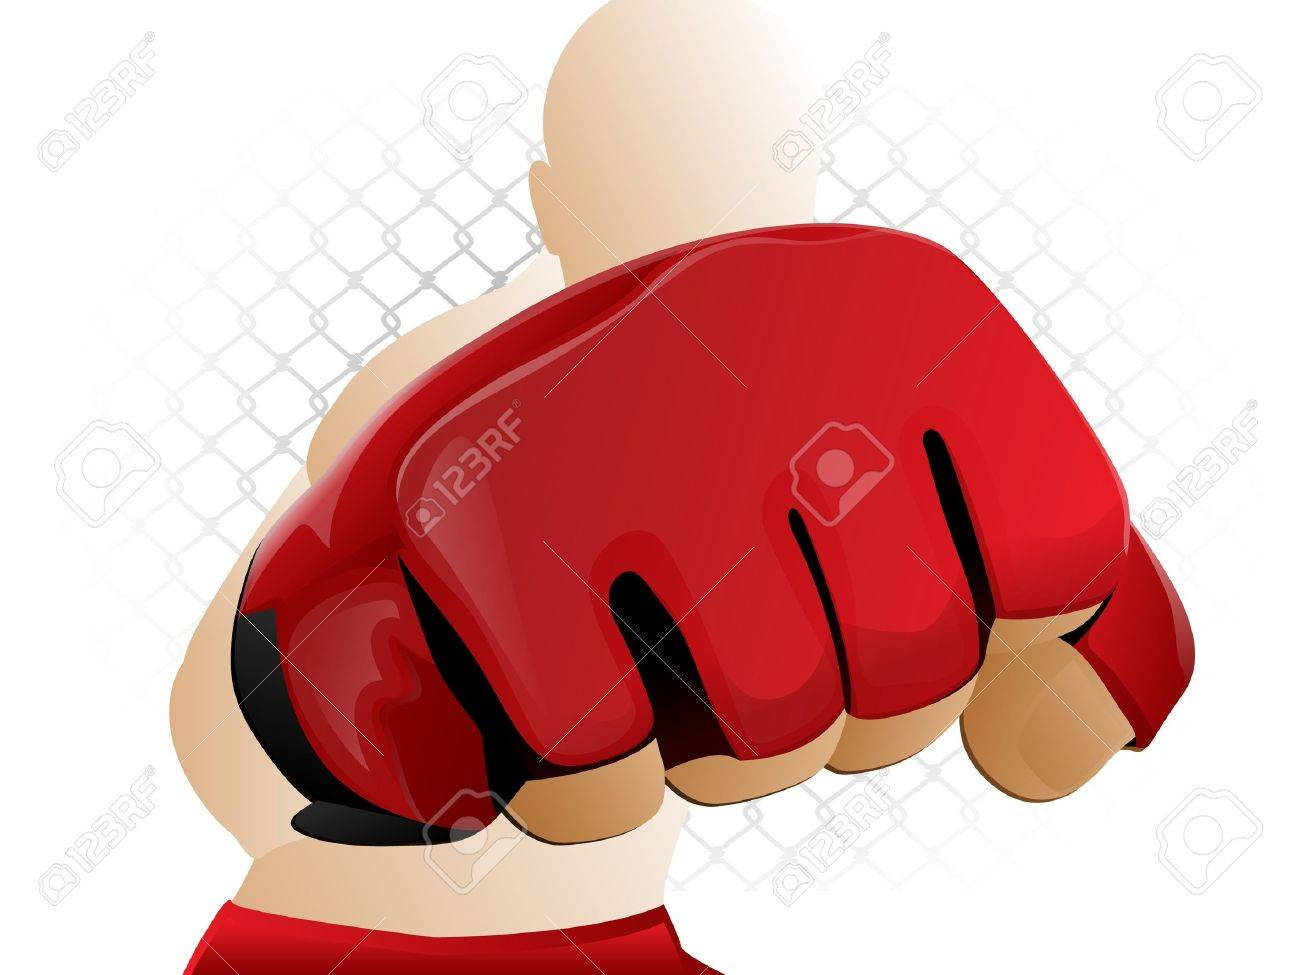 Mixed Martial Arts Fighter Punching with Padded Glove Stock Vector - 12192230